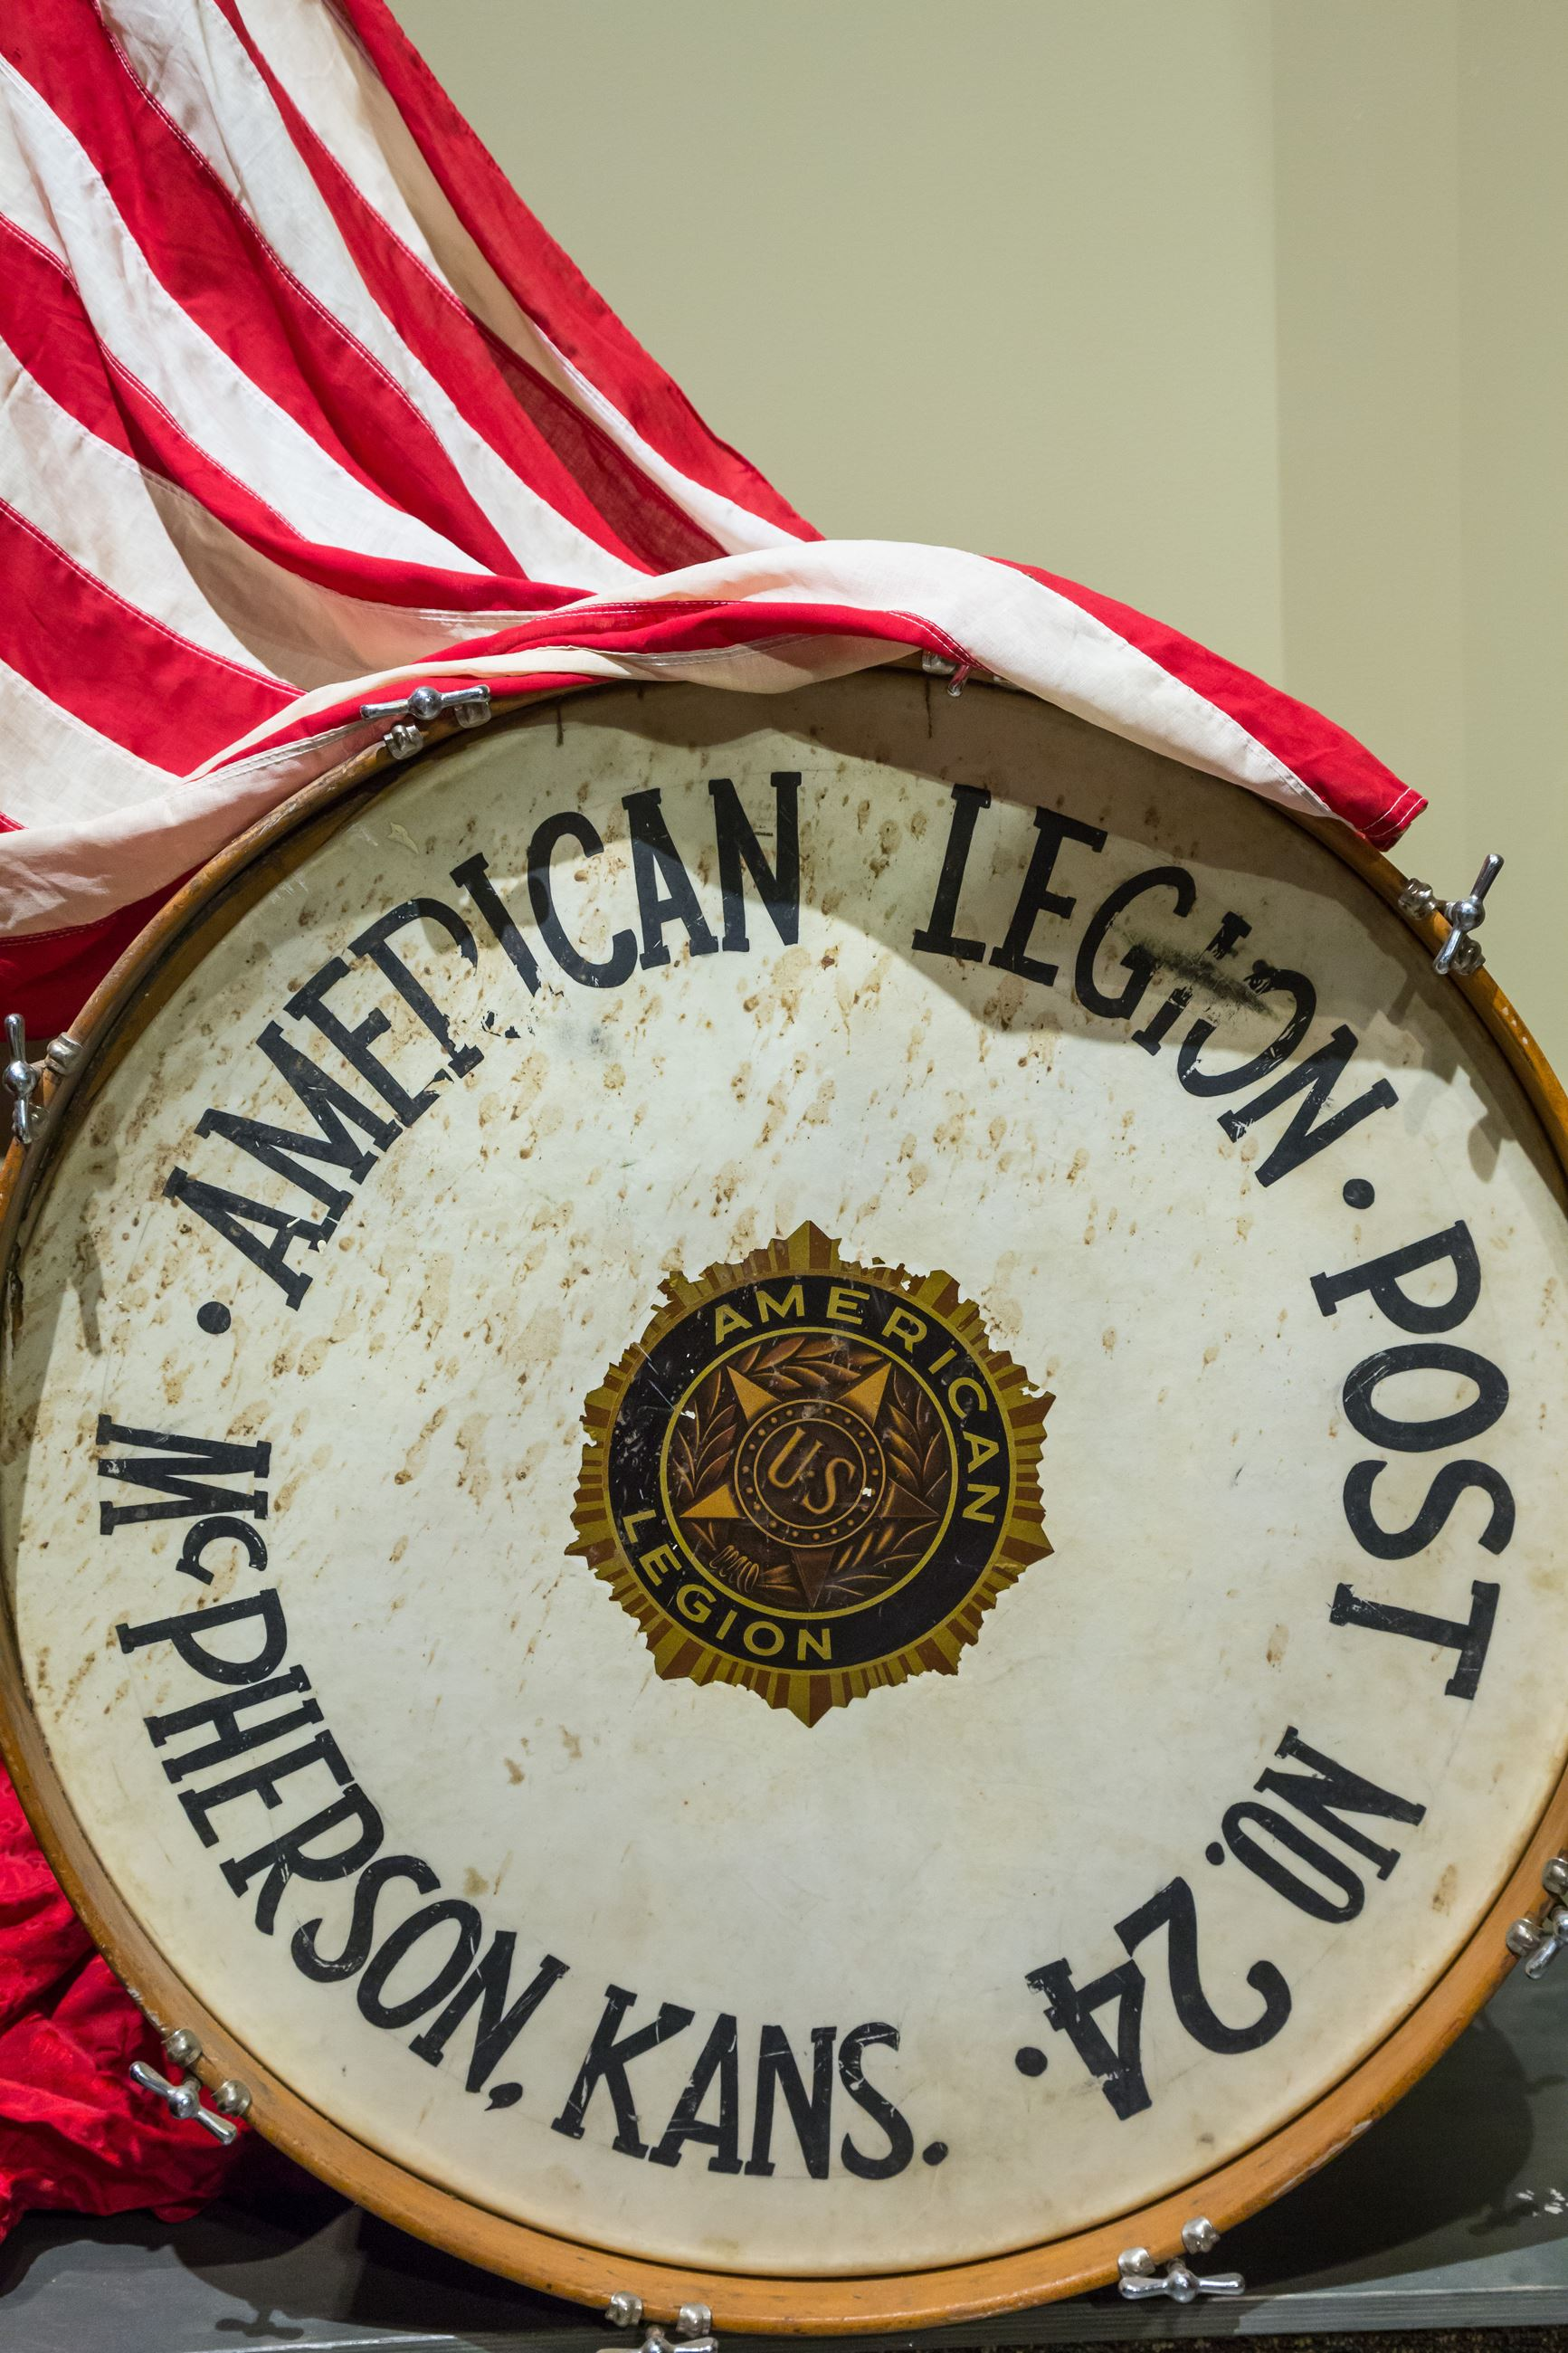 This is a picture of an antique drum from the American Legion Post 24